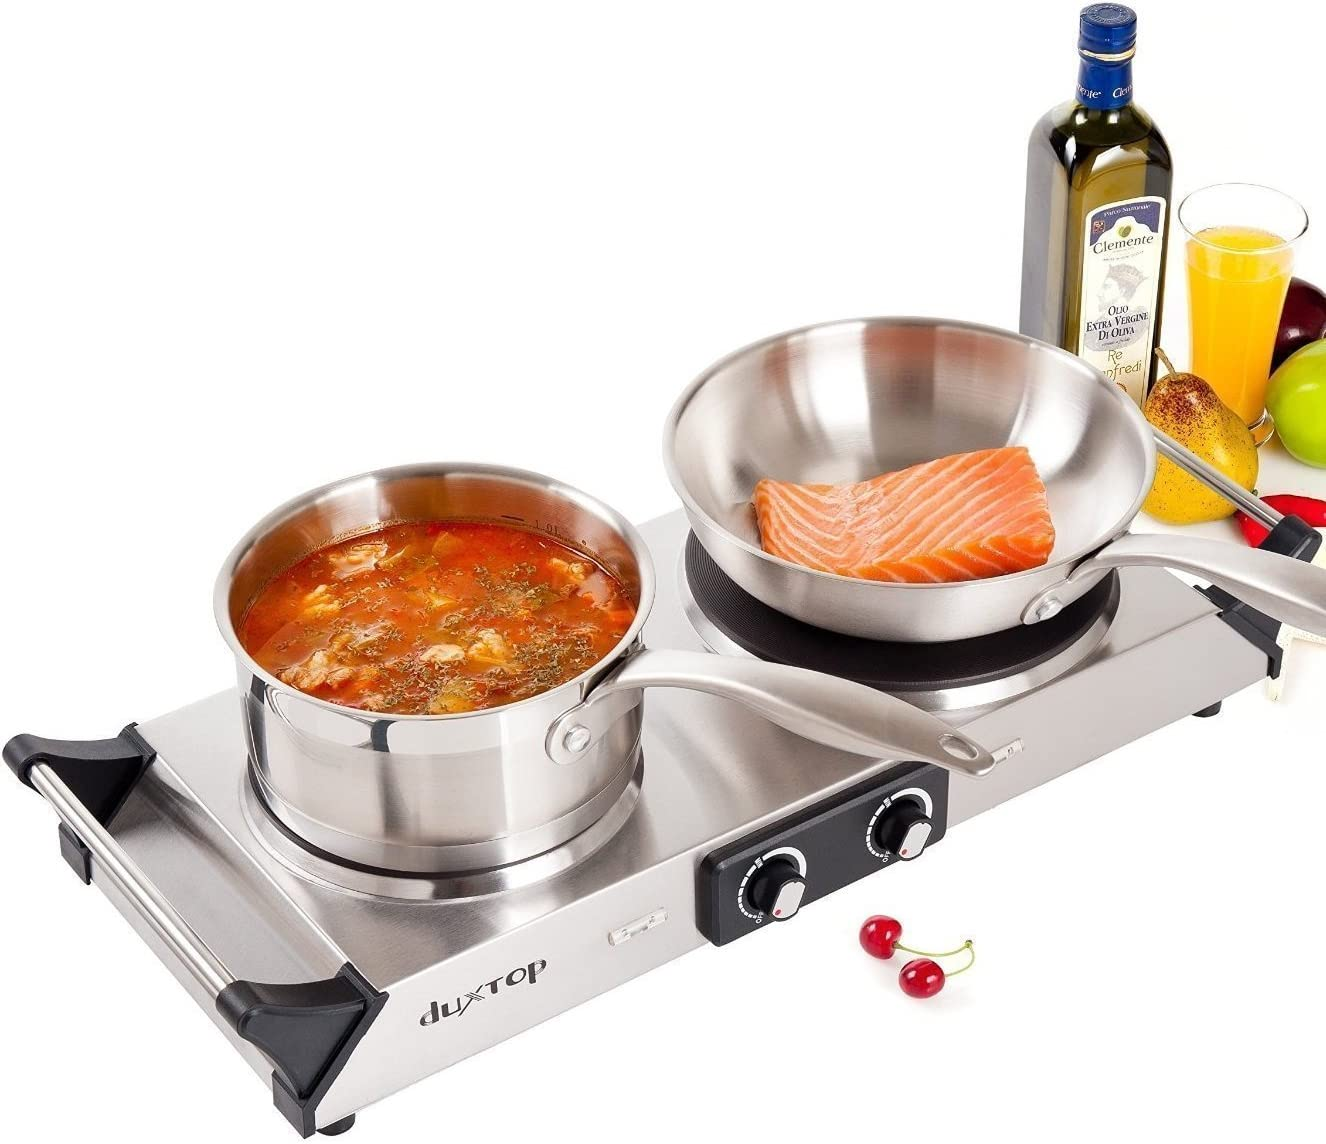 Duxtop Hot Plate Double Cast-Iron Electric Burner Cooktop with Adjustable Temperature Control, 1800W, Metal Housing, Indicator Light 2 Years Warranty